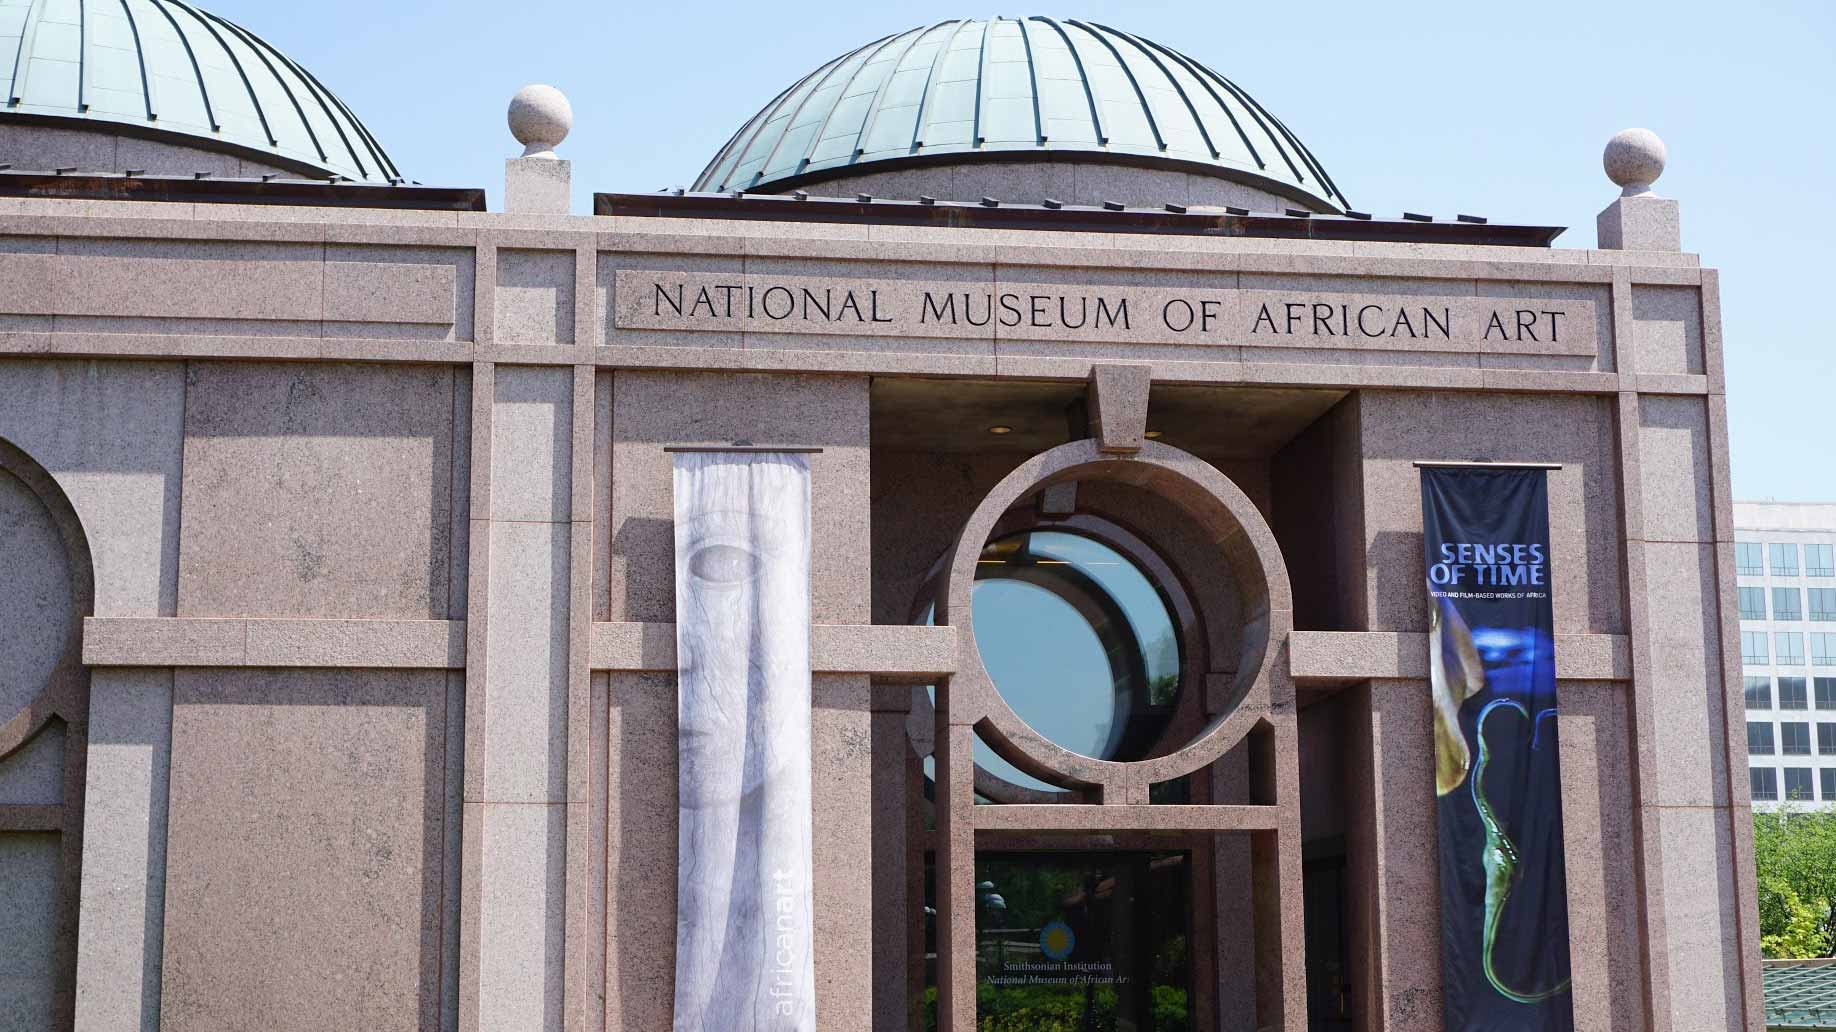 028 National Museum African Art Washington Essay Example My Favourite Place In Surprising India Favorite Tourist Hindi Full